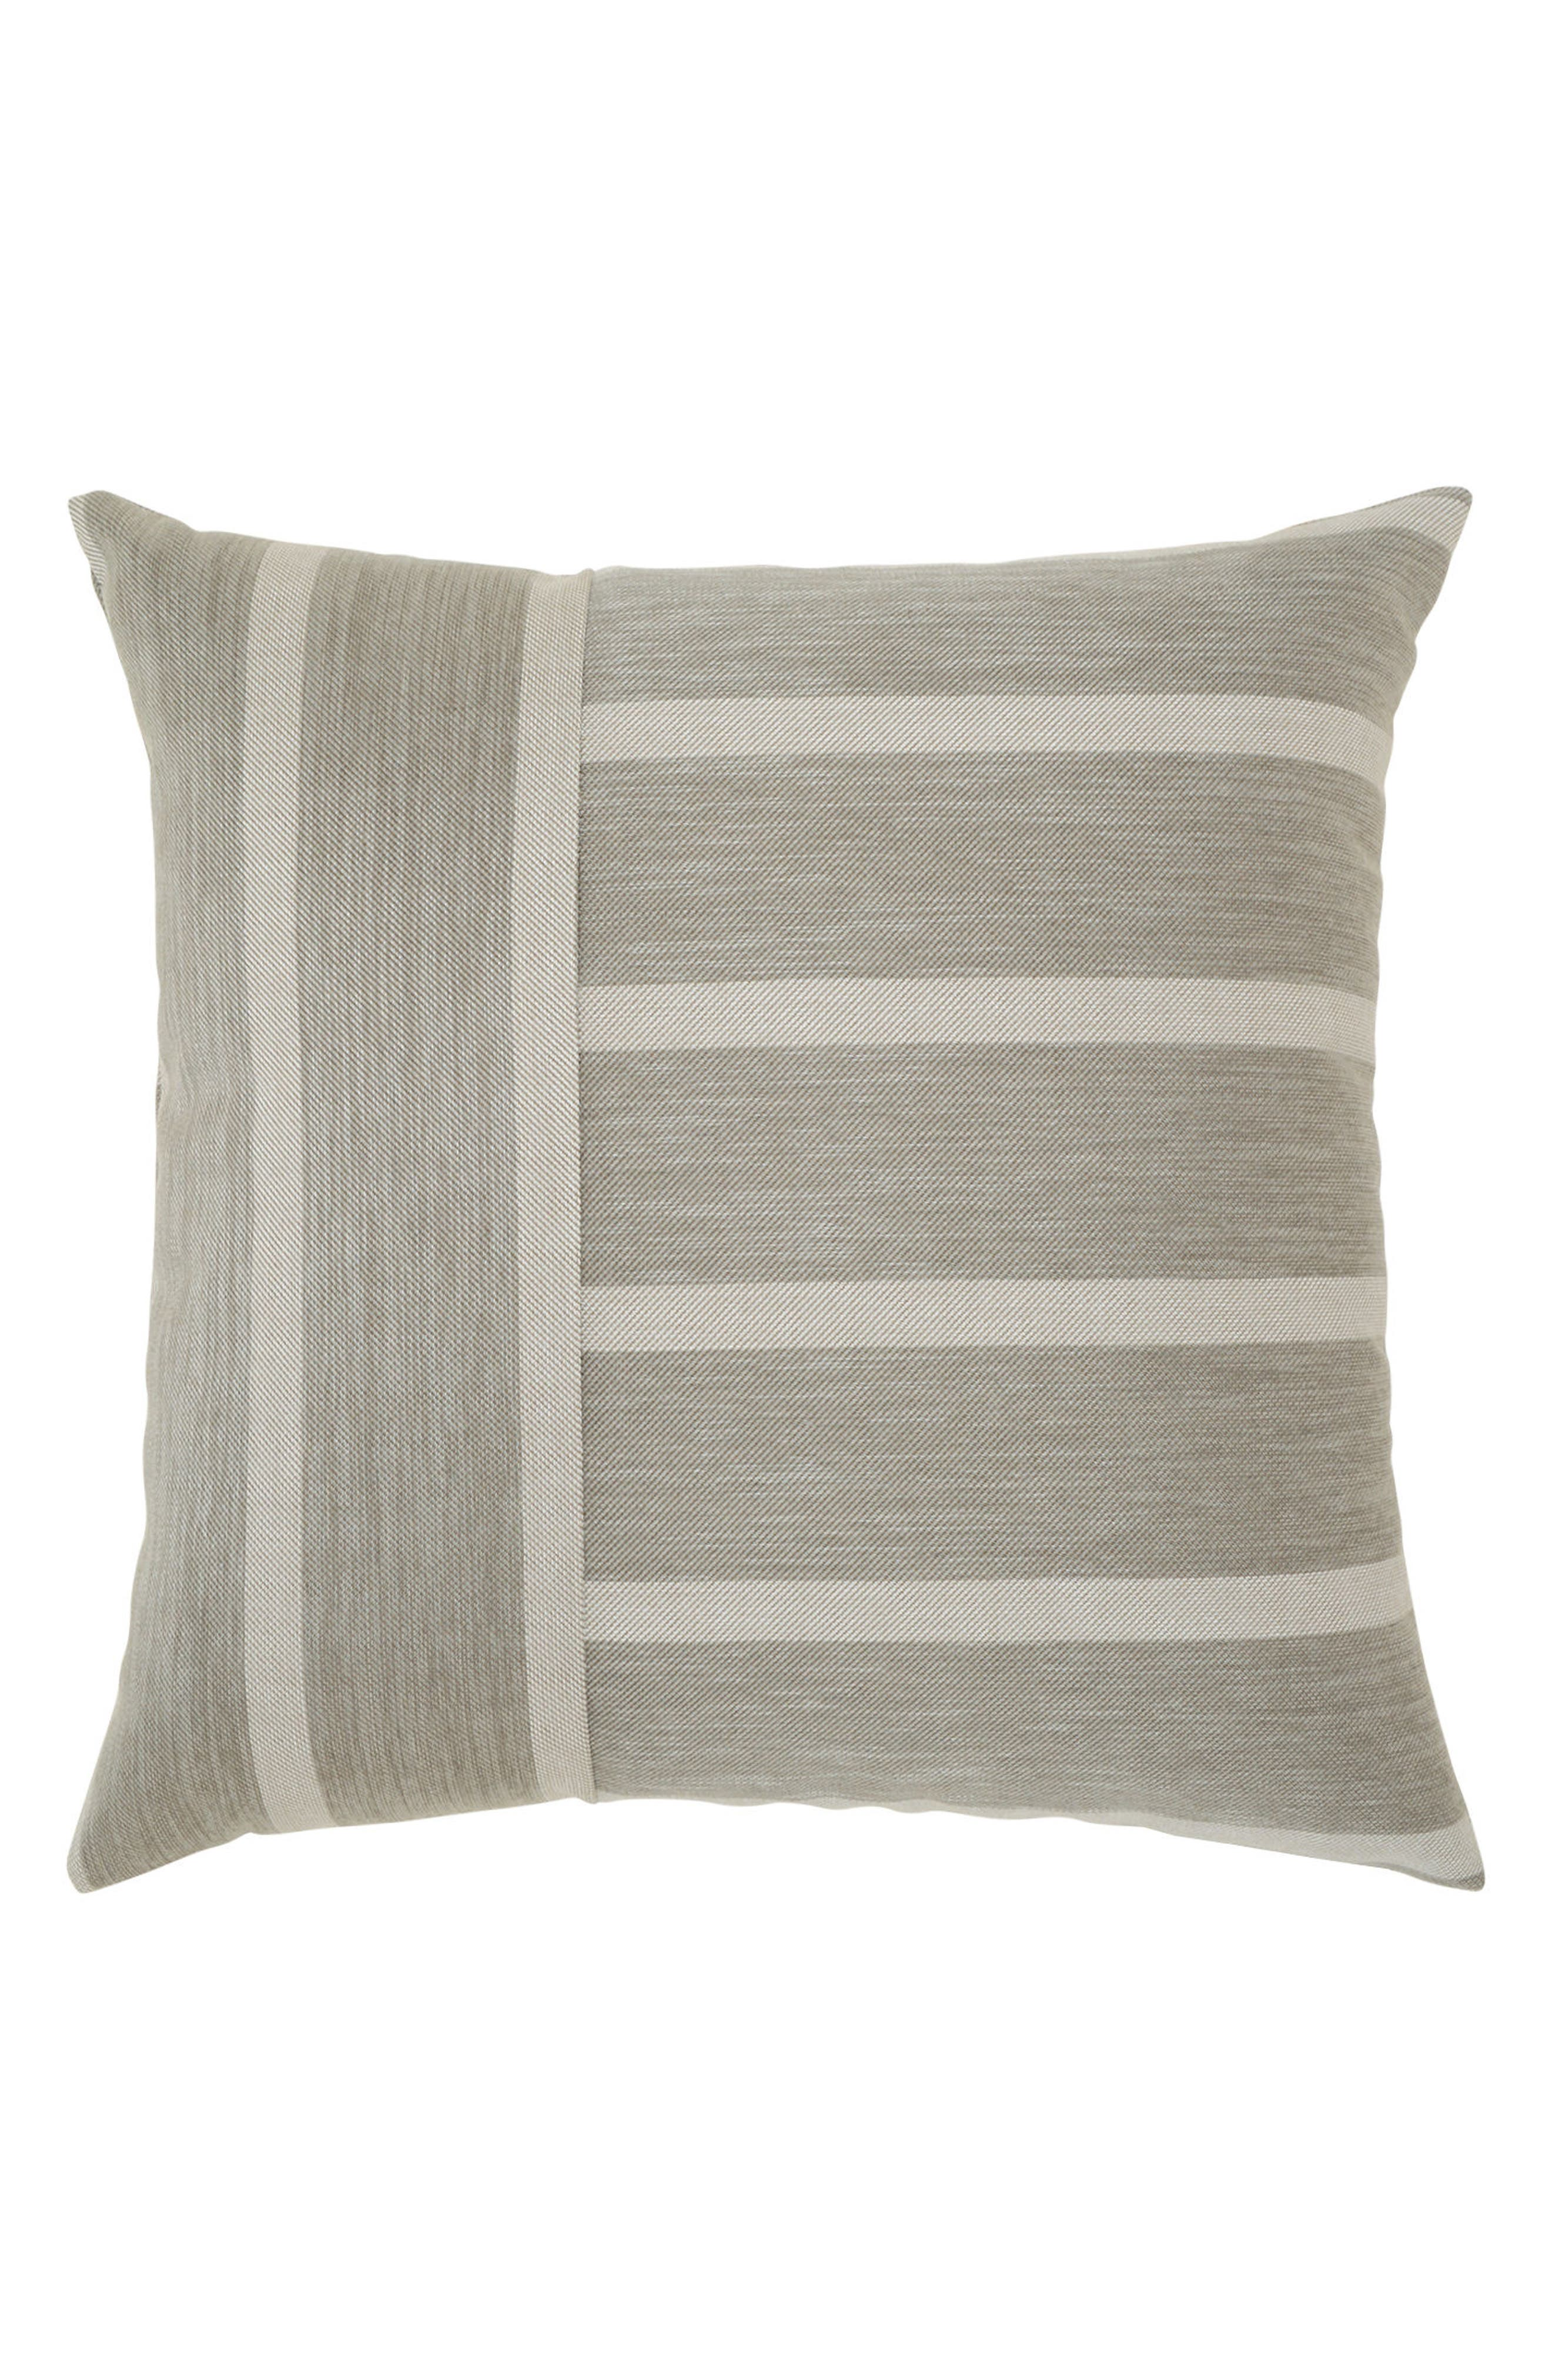 Sparkle Stripe Indoor/Outdoor Accent Pillow,                             Main thumbnail 1, color,                             020